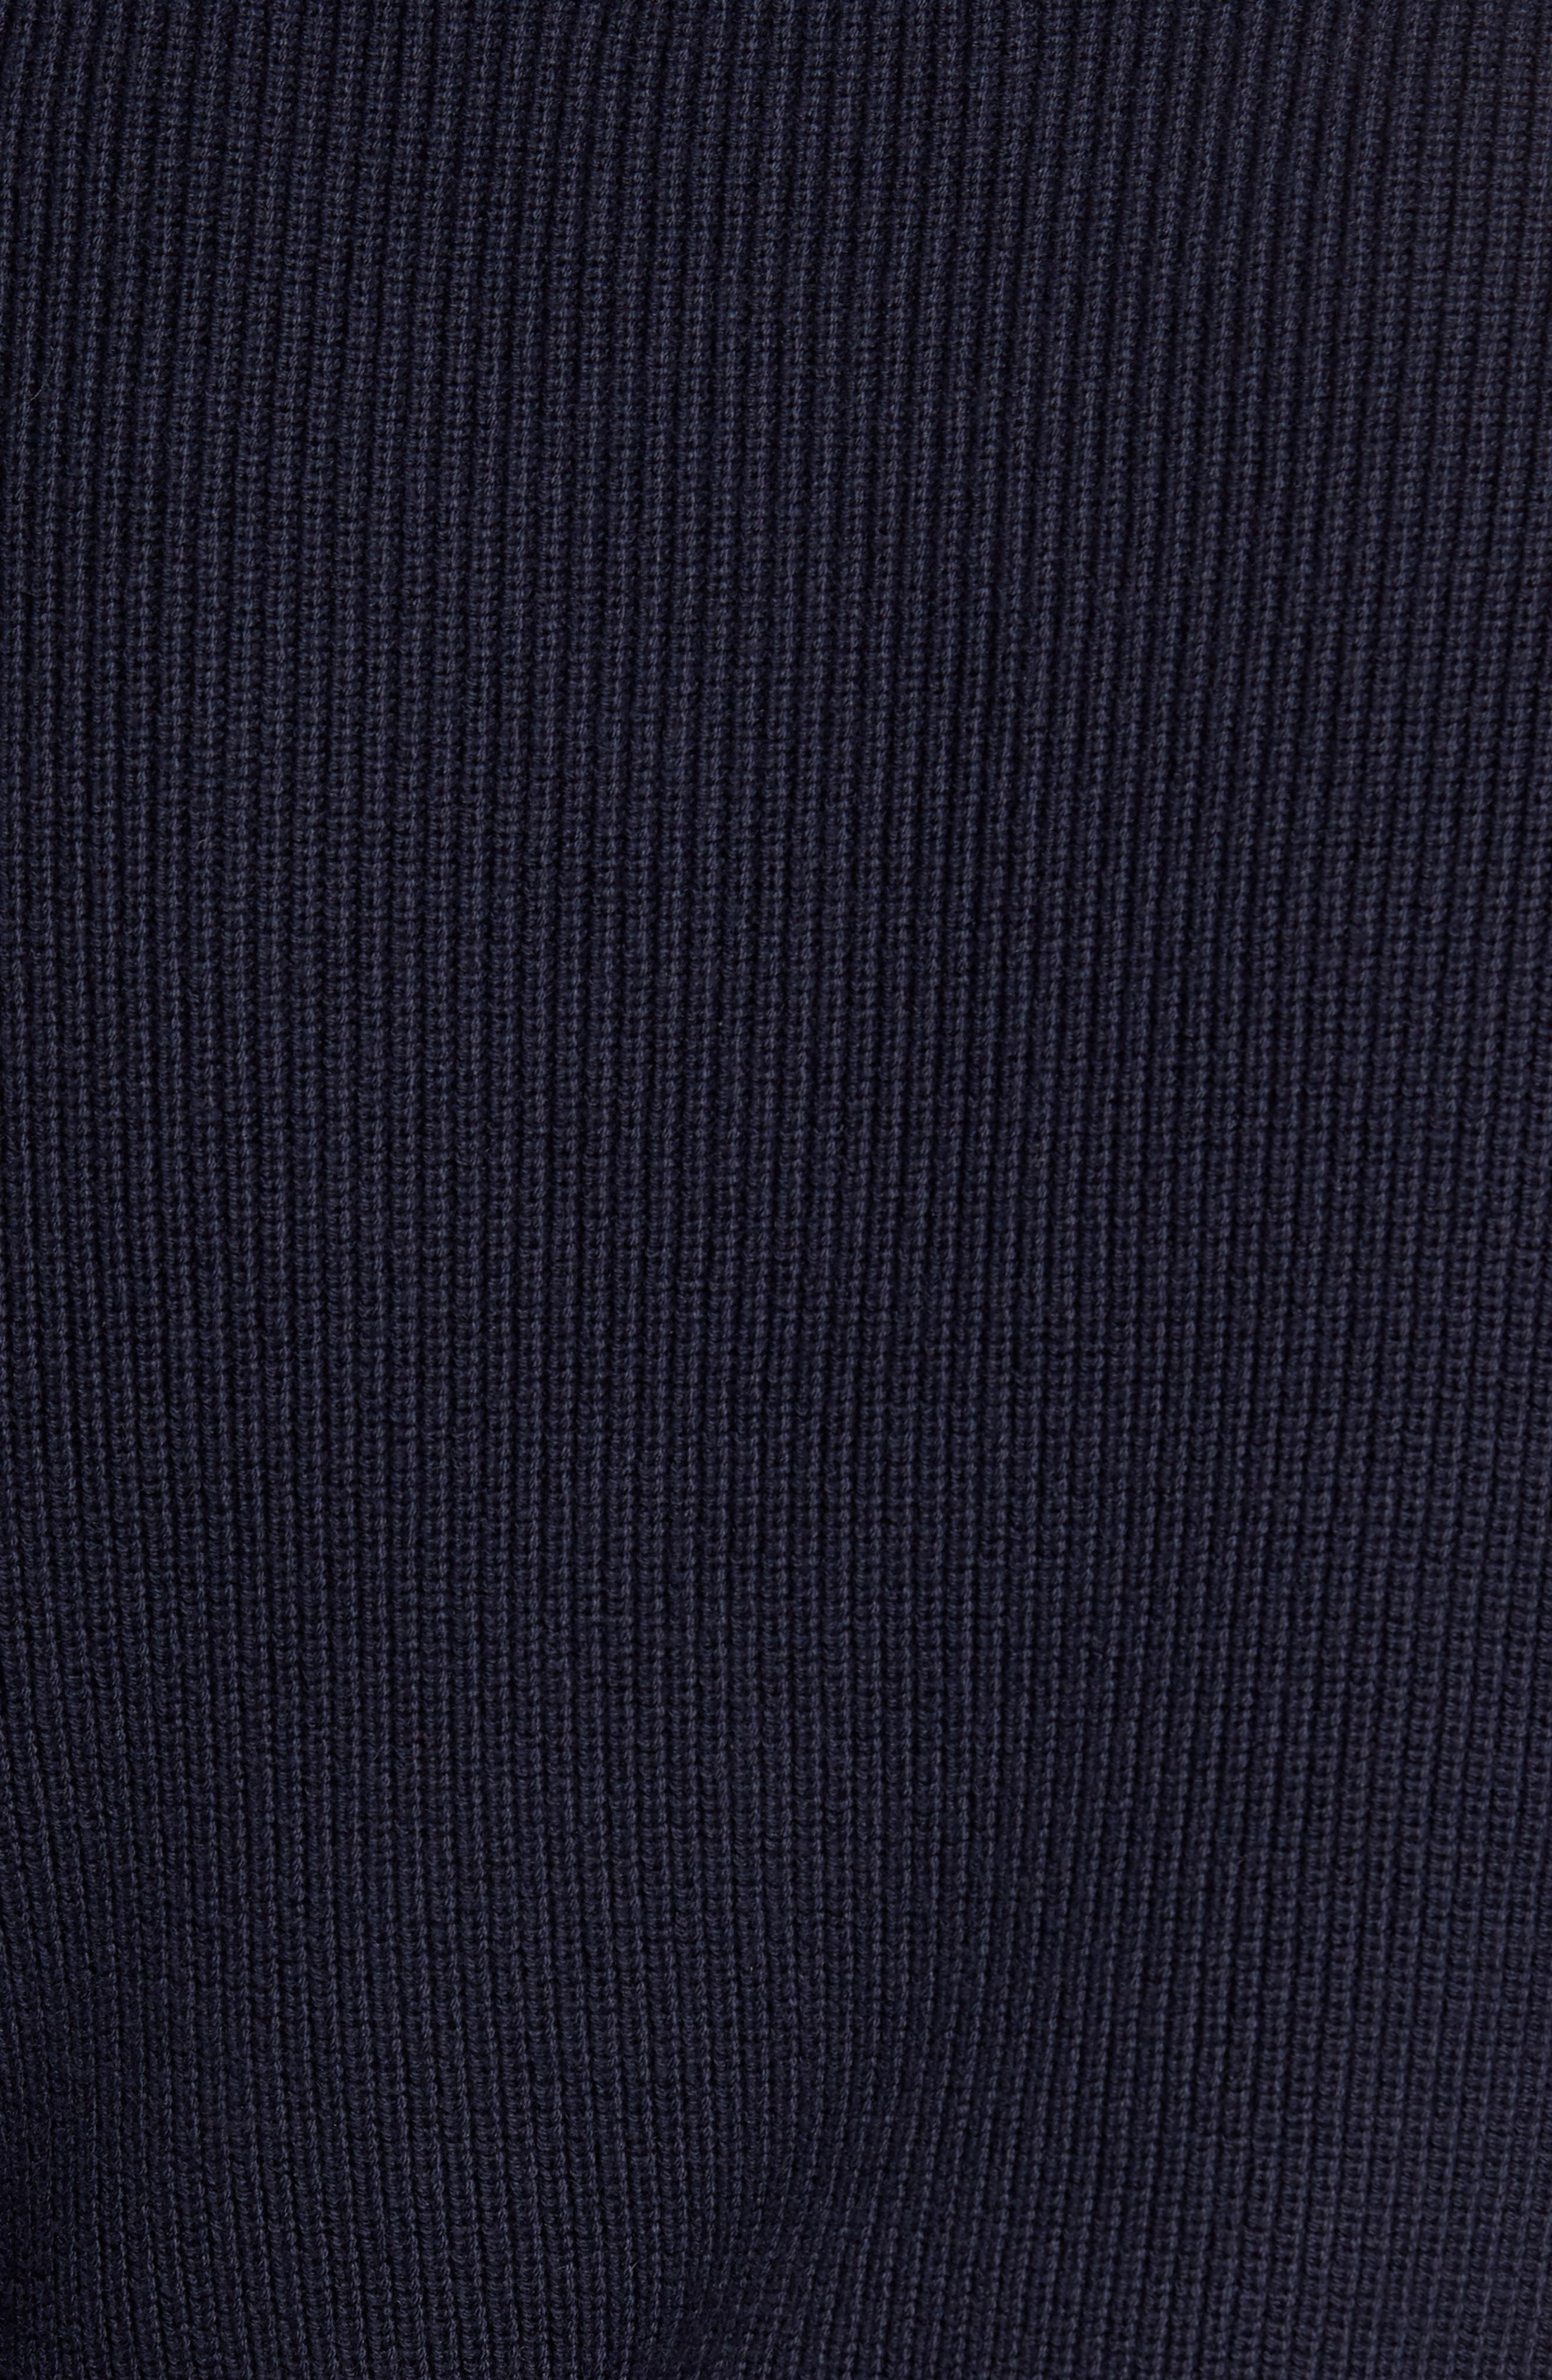 Ribbed Quarter Zip Sweater,                             Alternate thumbnail 5, color,                             Navy Night